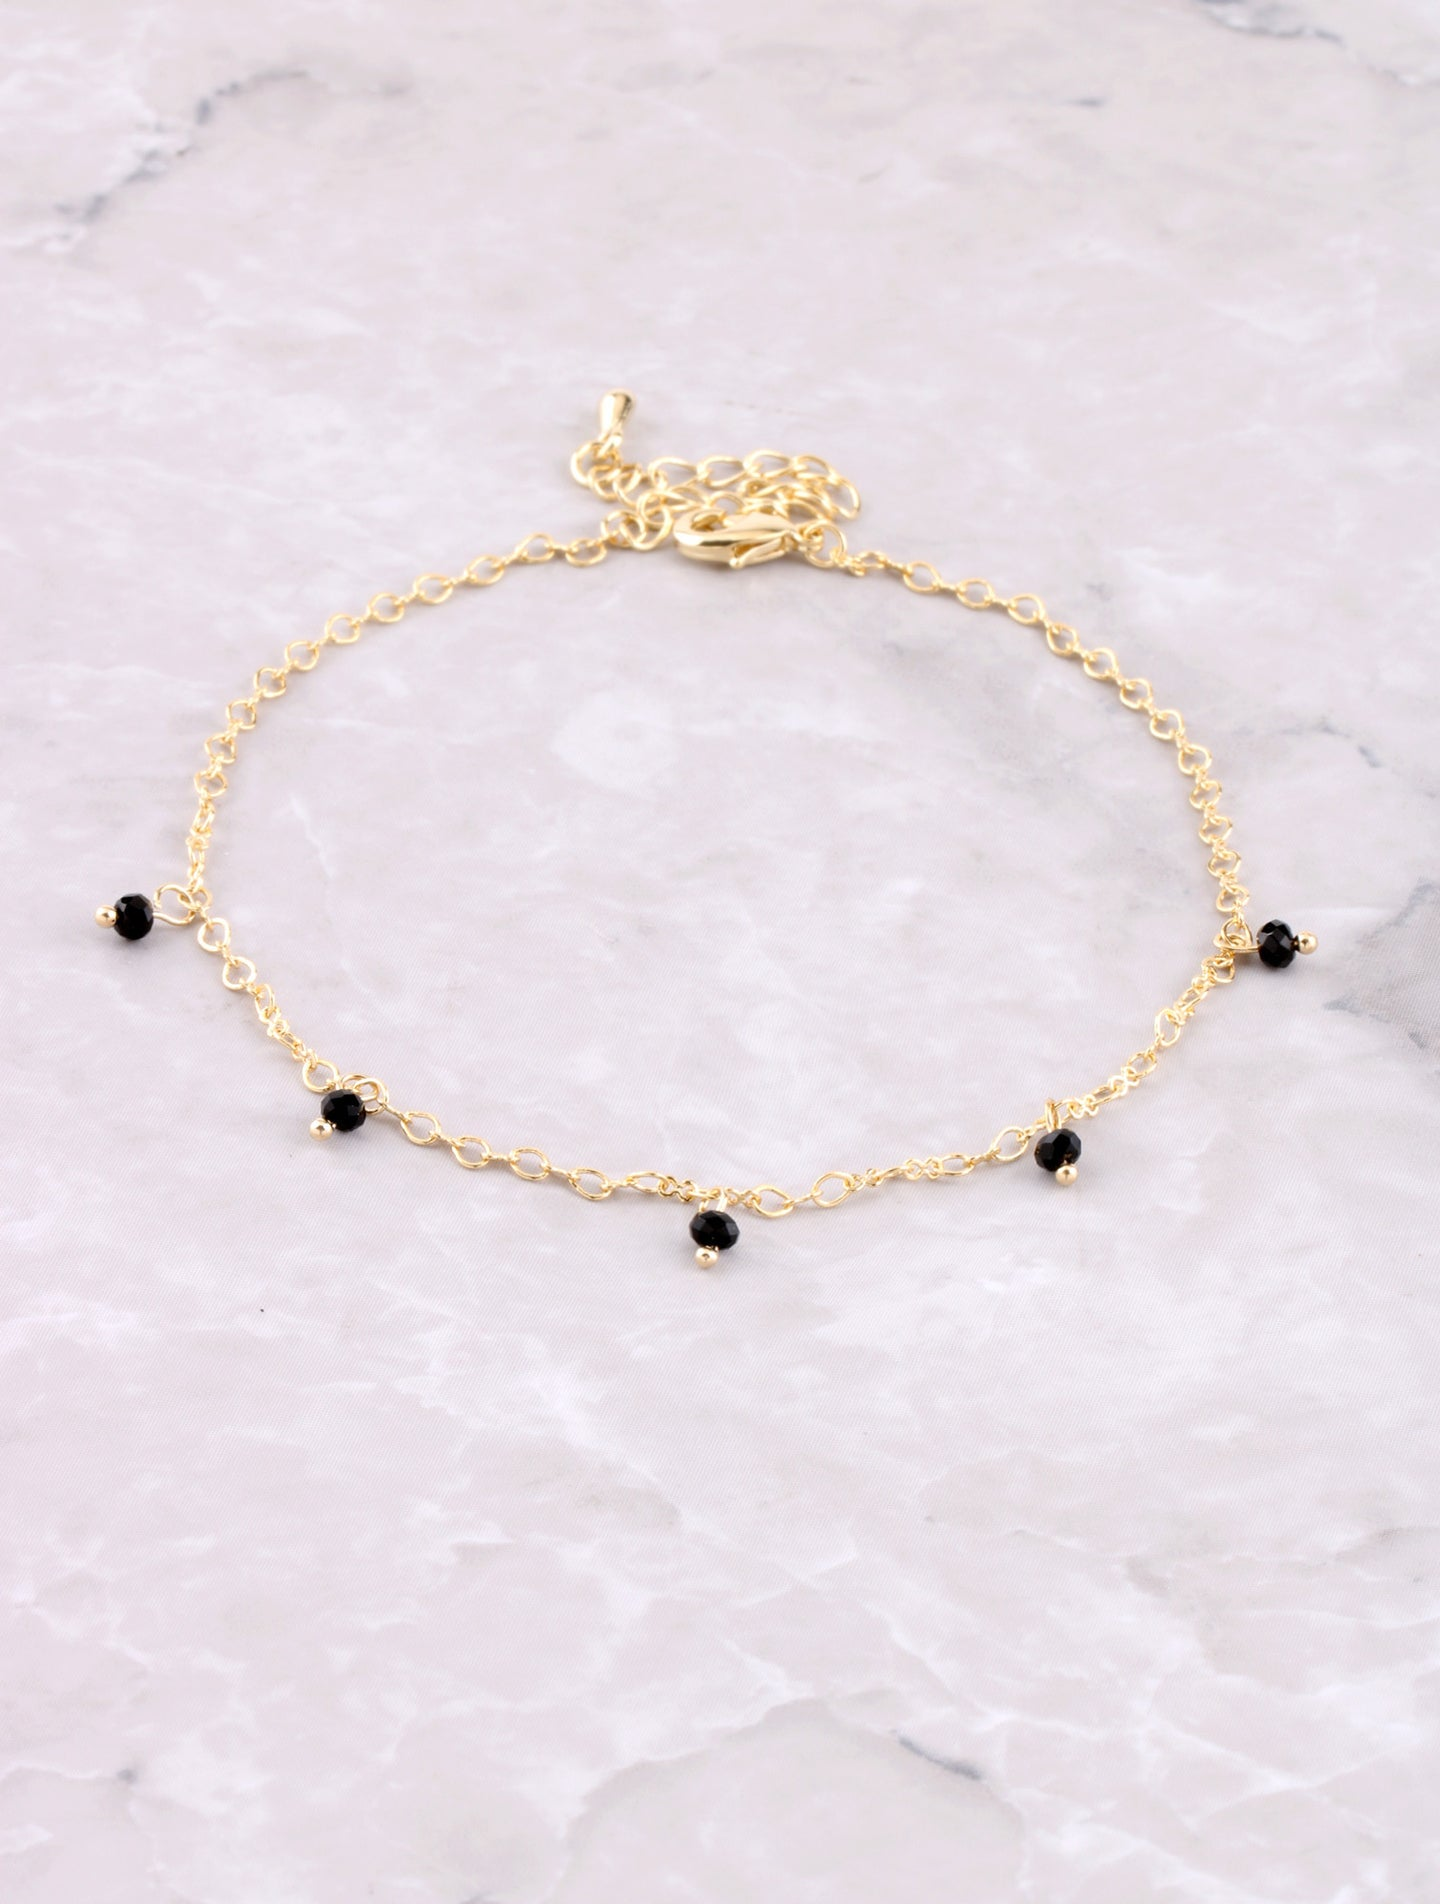 Hanging Beads Anklet Anarchy Street Black